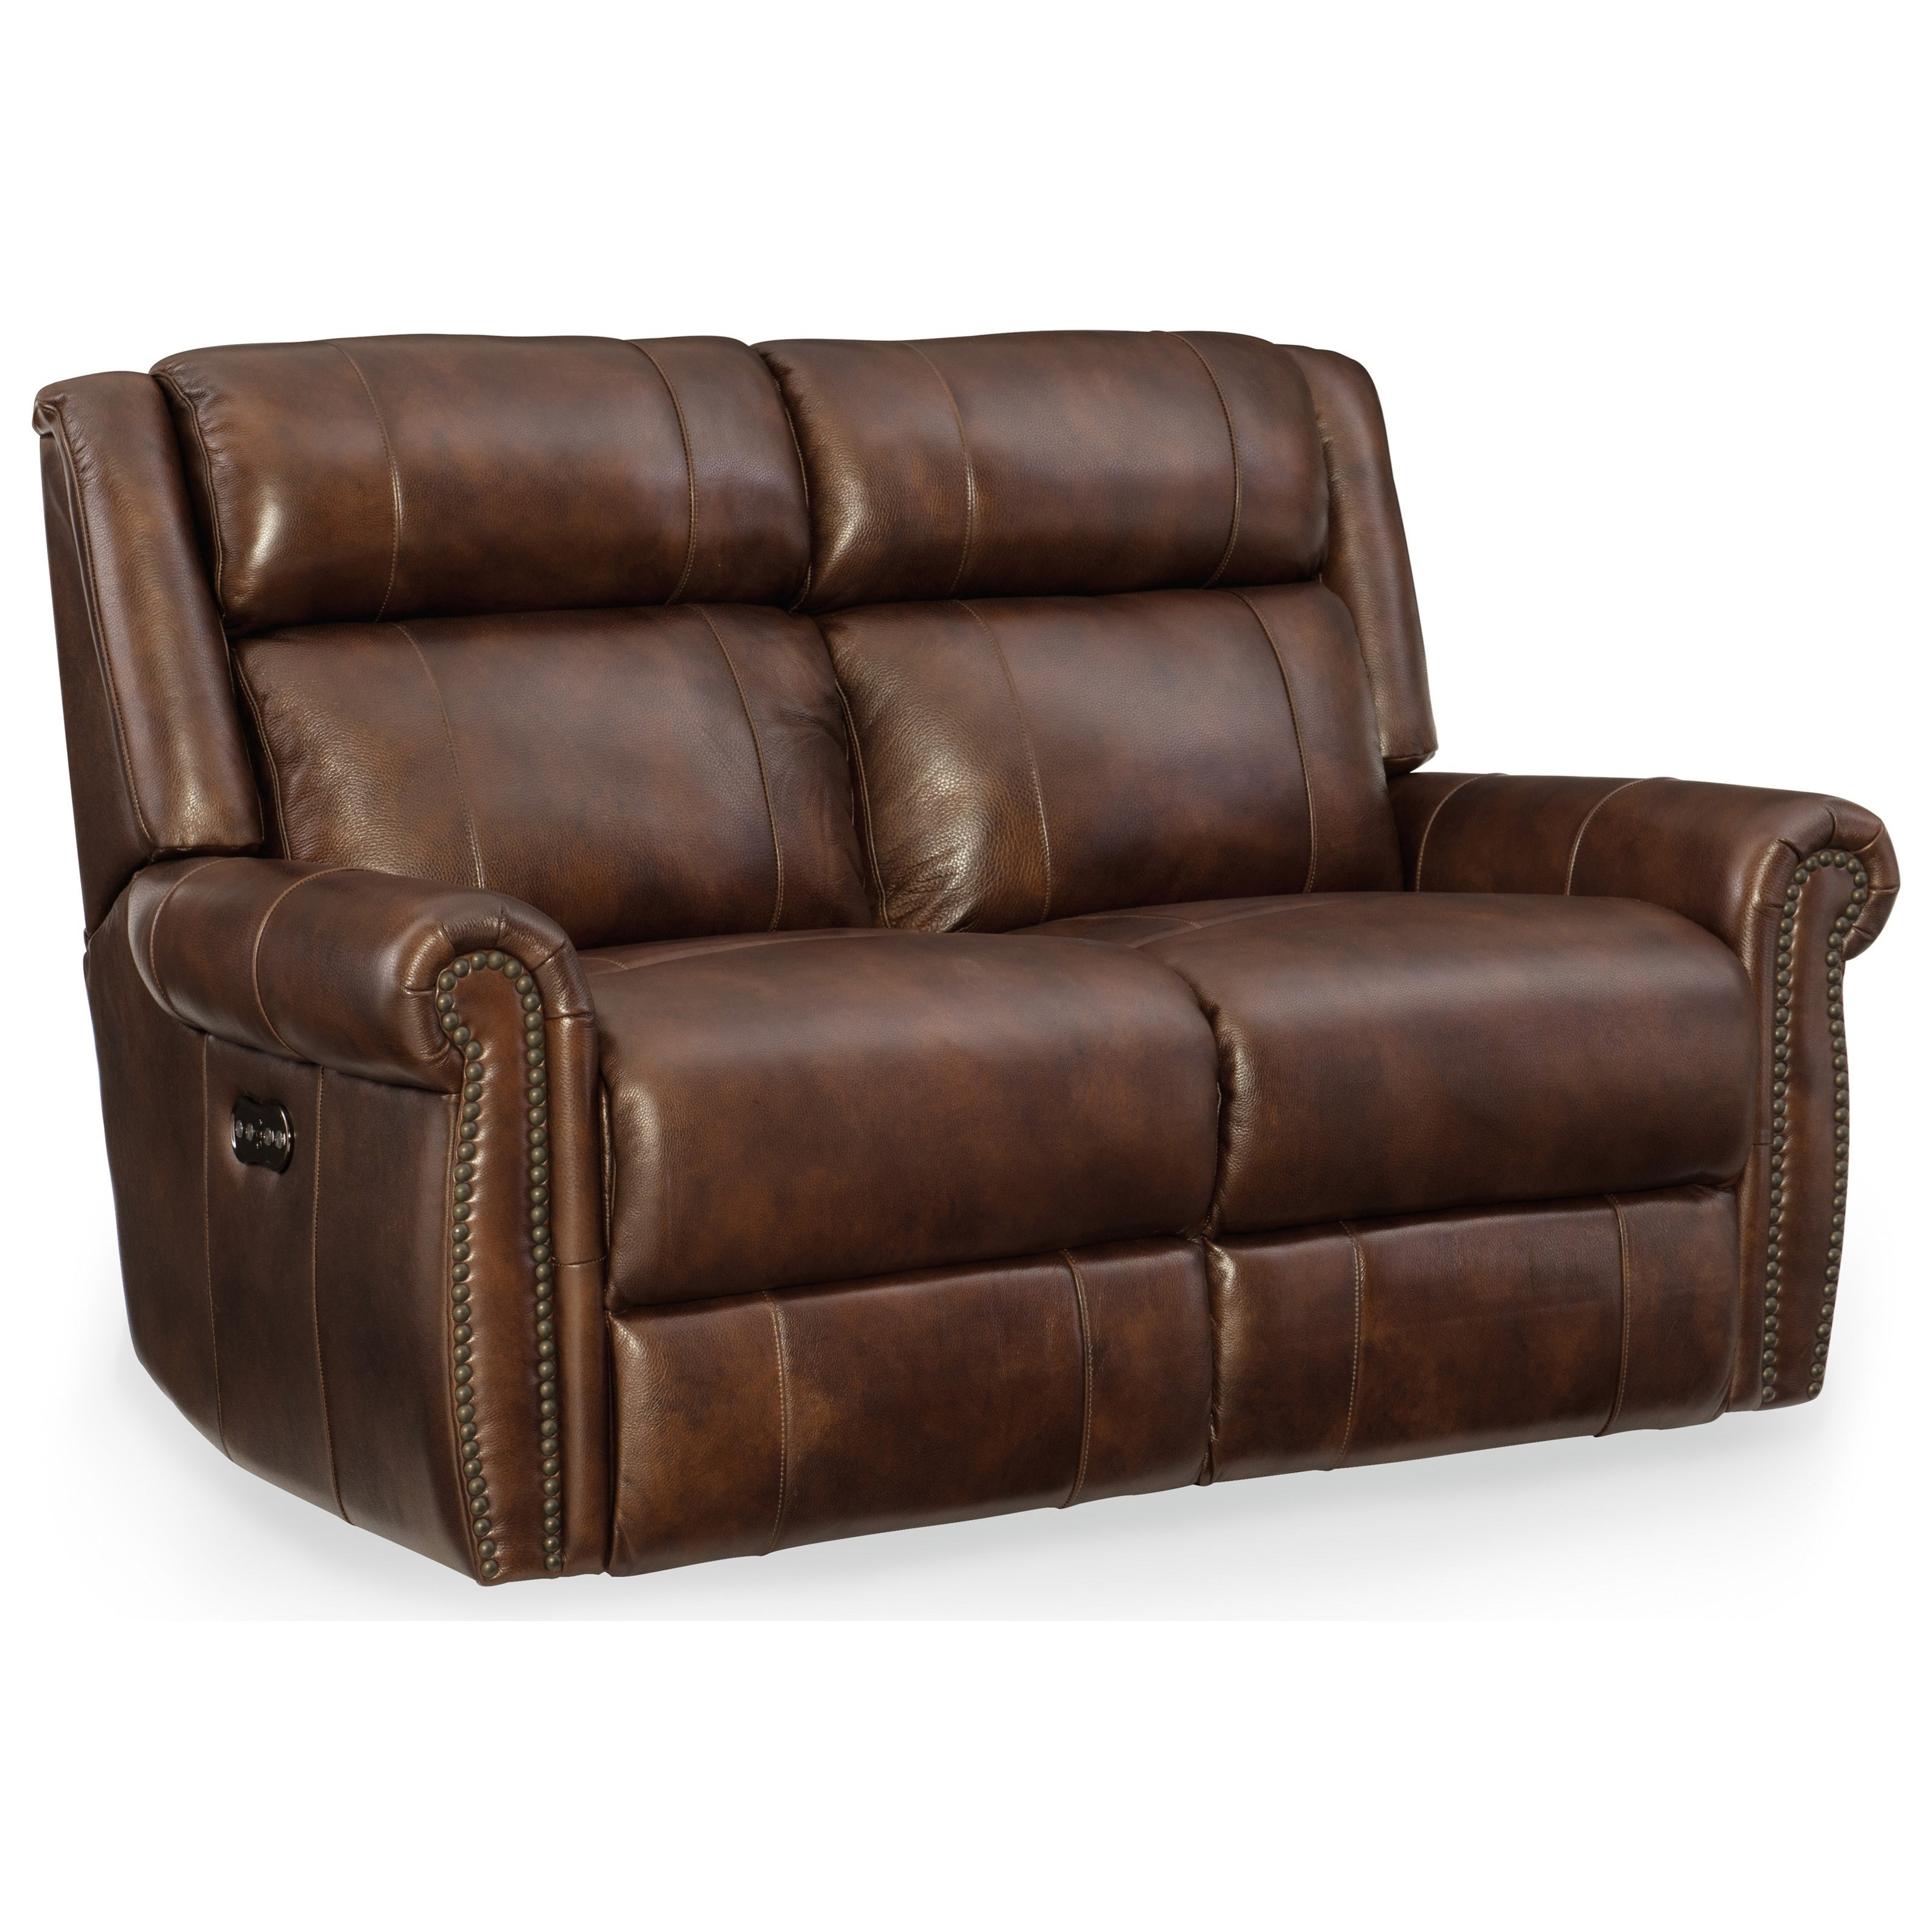 Esme Power Motion Loveseat with Power Headrest by Hooker Furniture at Miller Waldrop Furniture and Decor